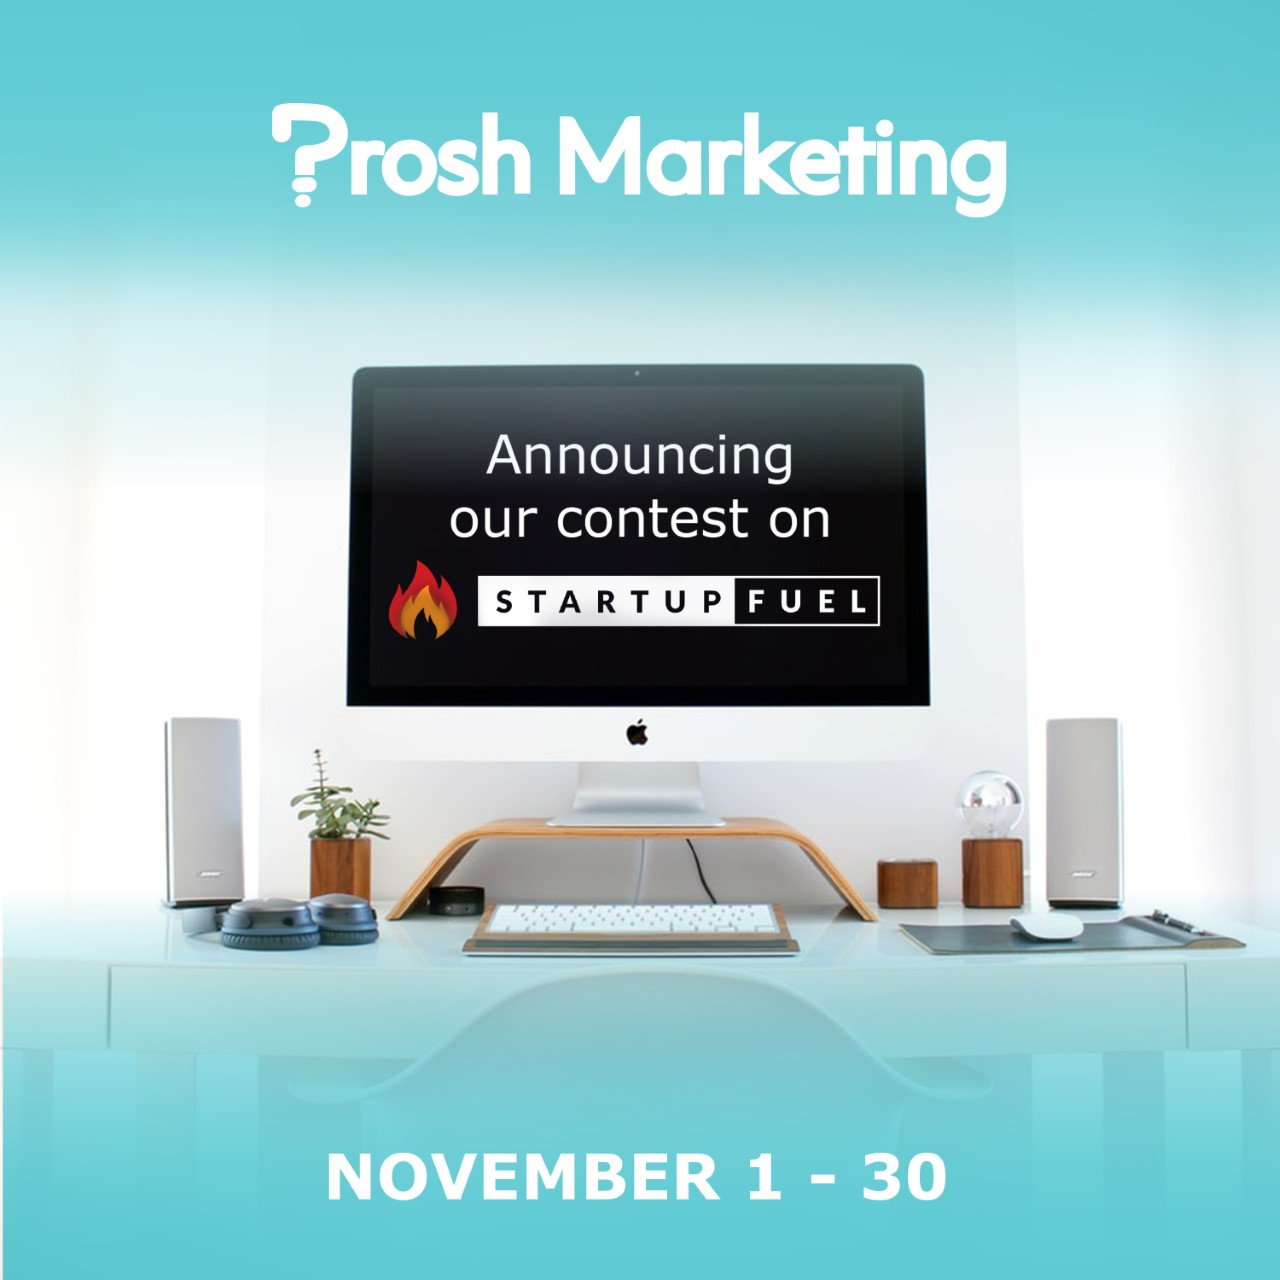 PROSH MARKETING  STARTUPFUEL LAUNCH A CONTEST TO HELP START-UPS GROW